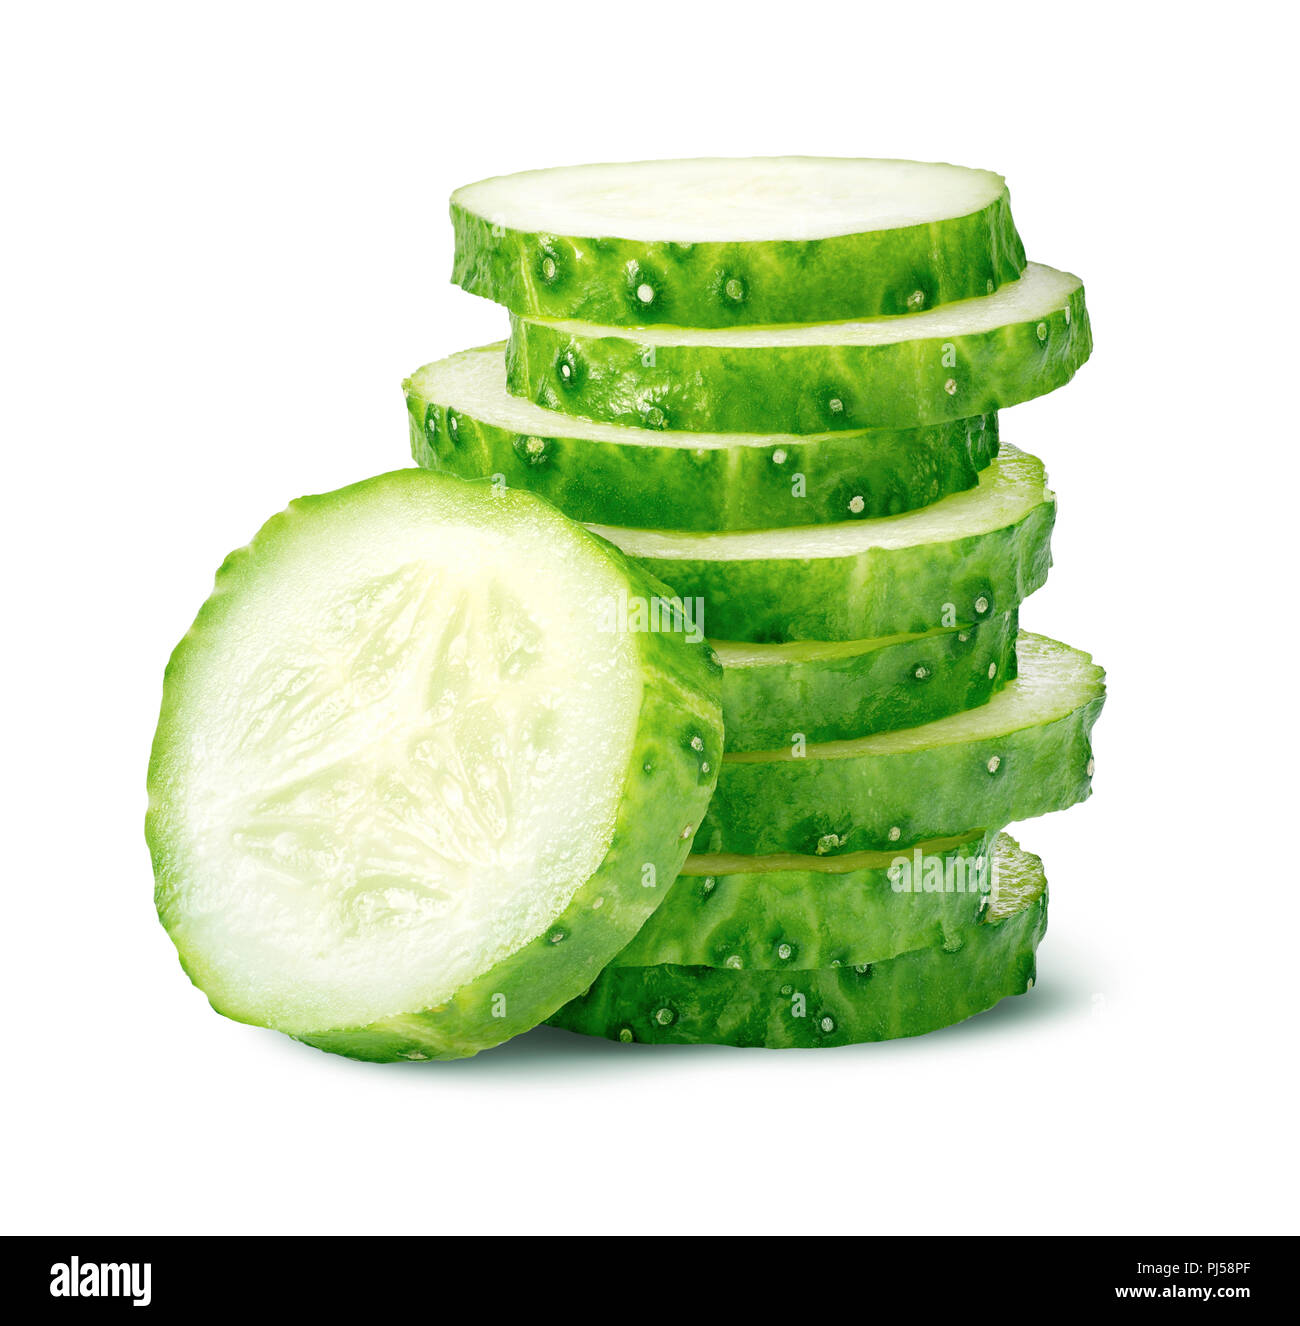 Pile of cucumber slices isolated on white background as package design element - Stock Image